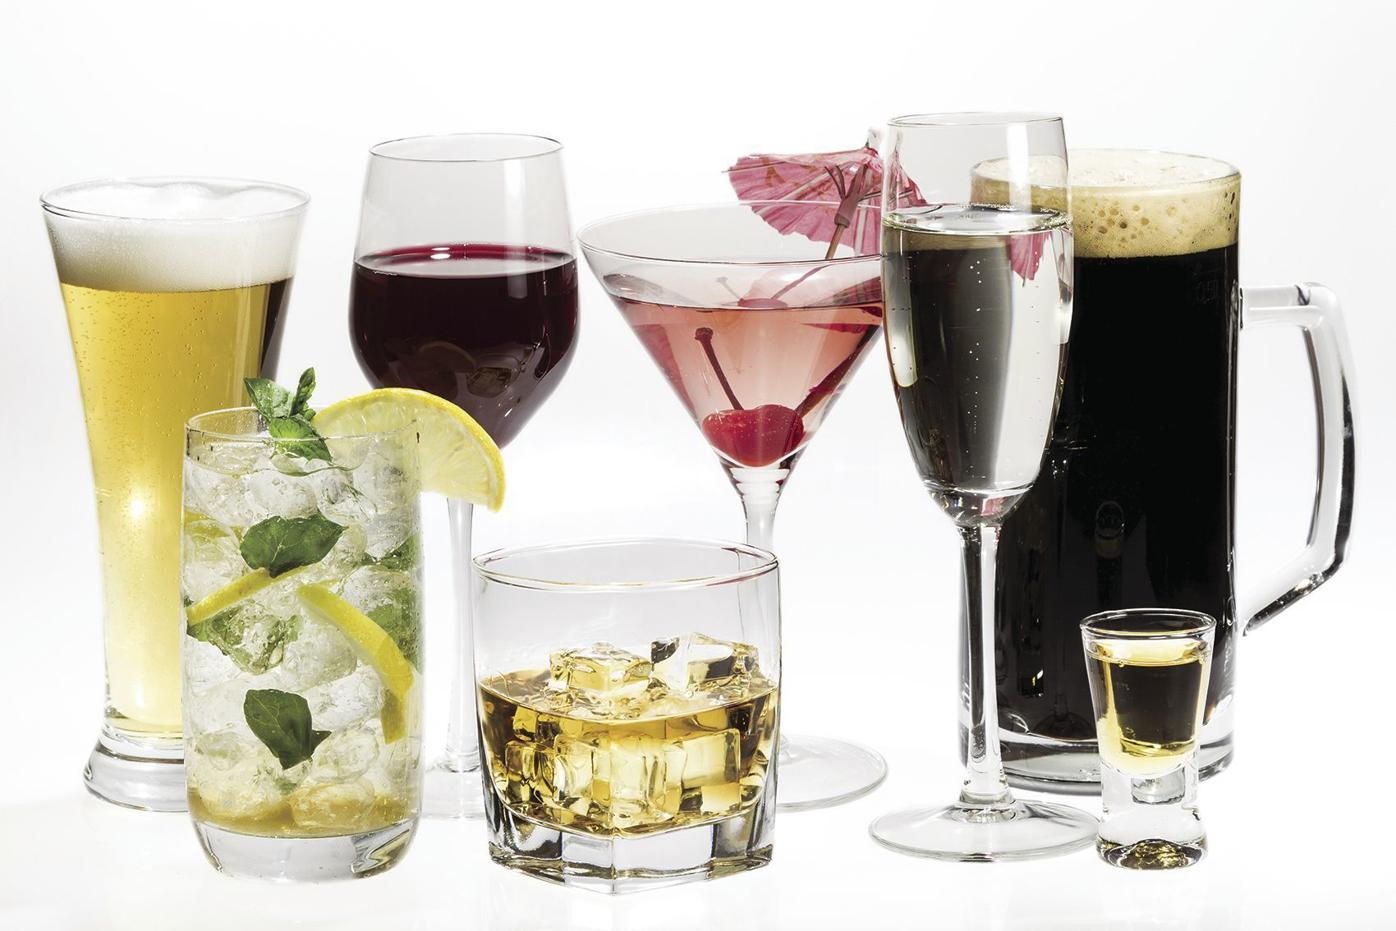 Different kinds of booze in alcoholic beverages